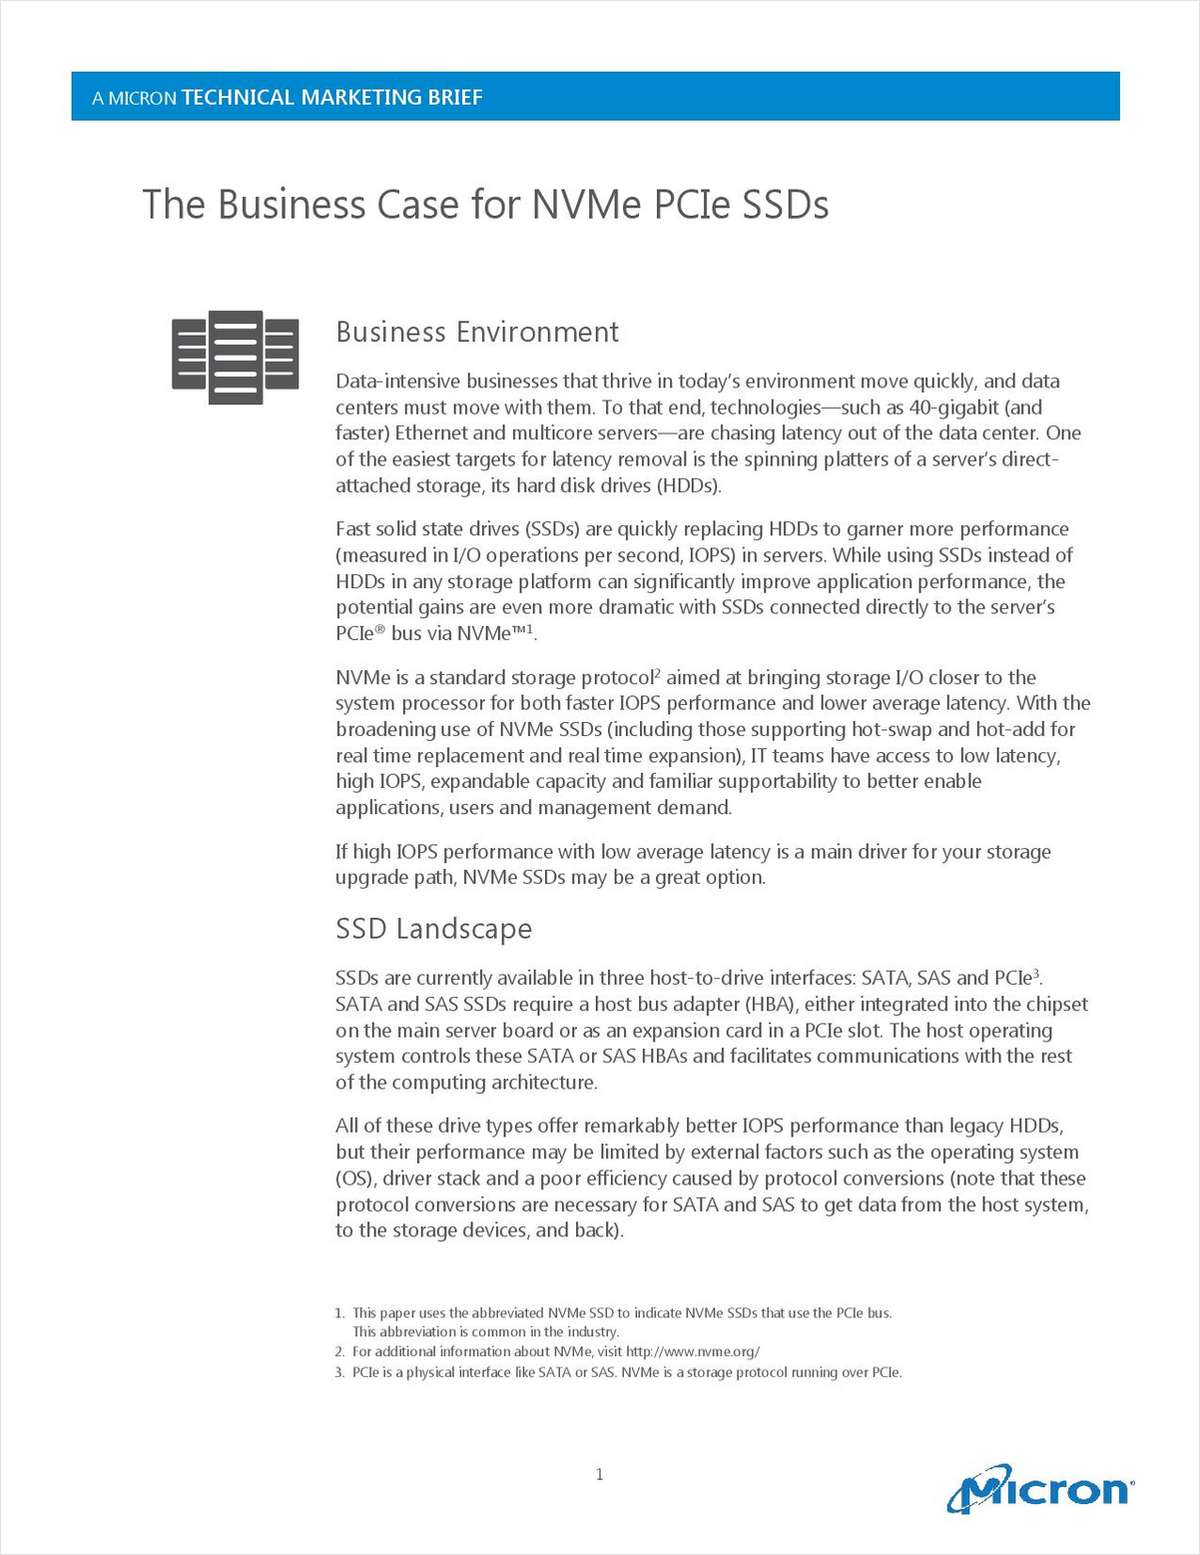 The Business Case for NVMe PCIe SSDs